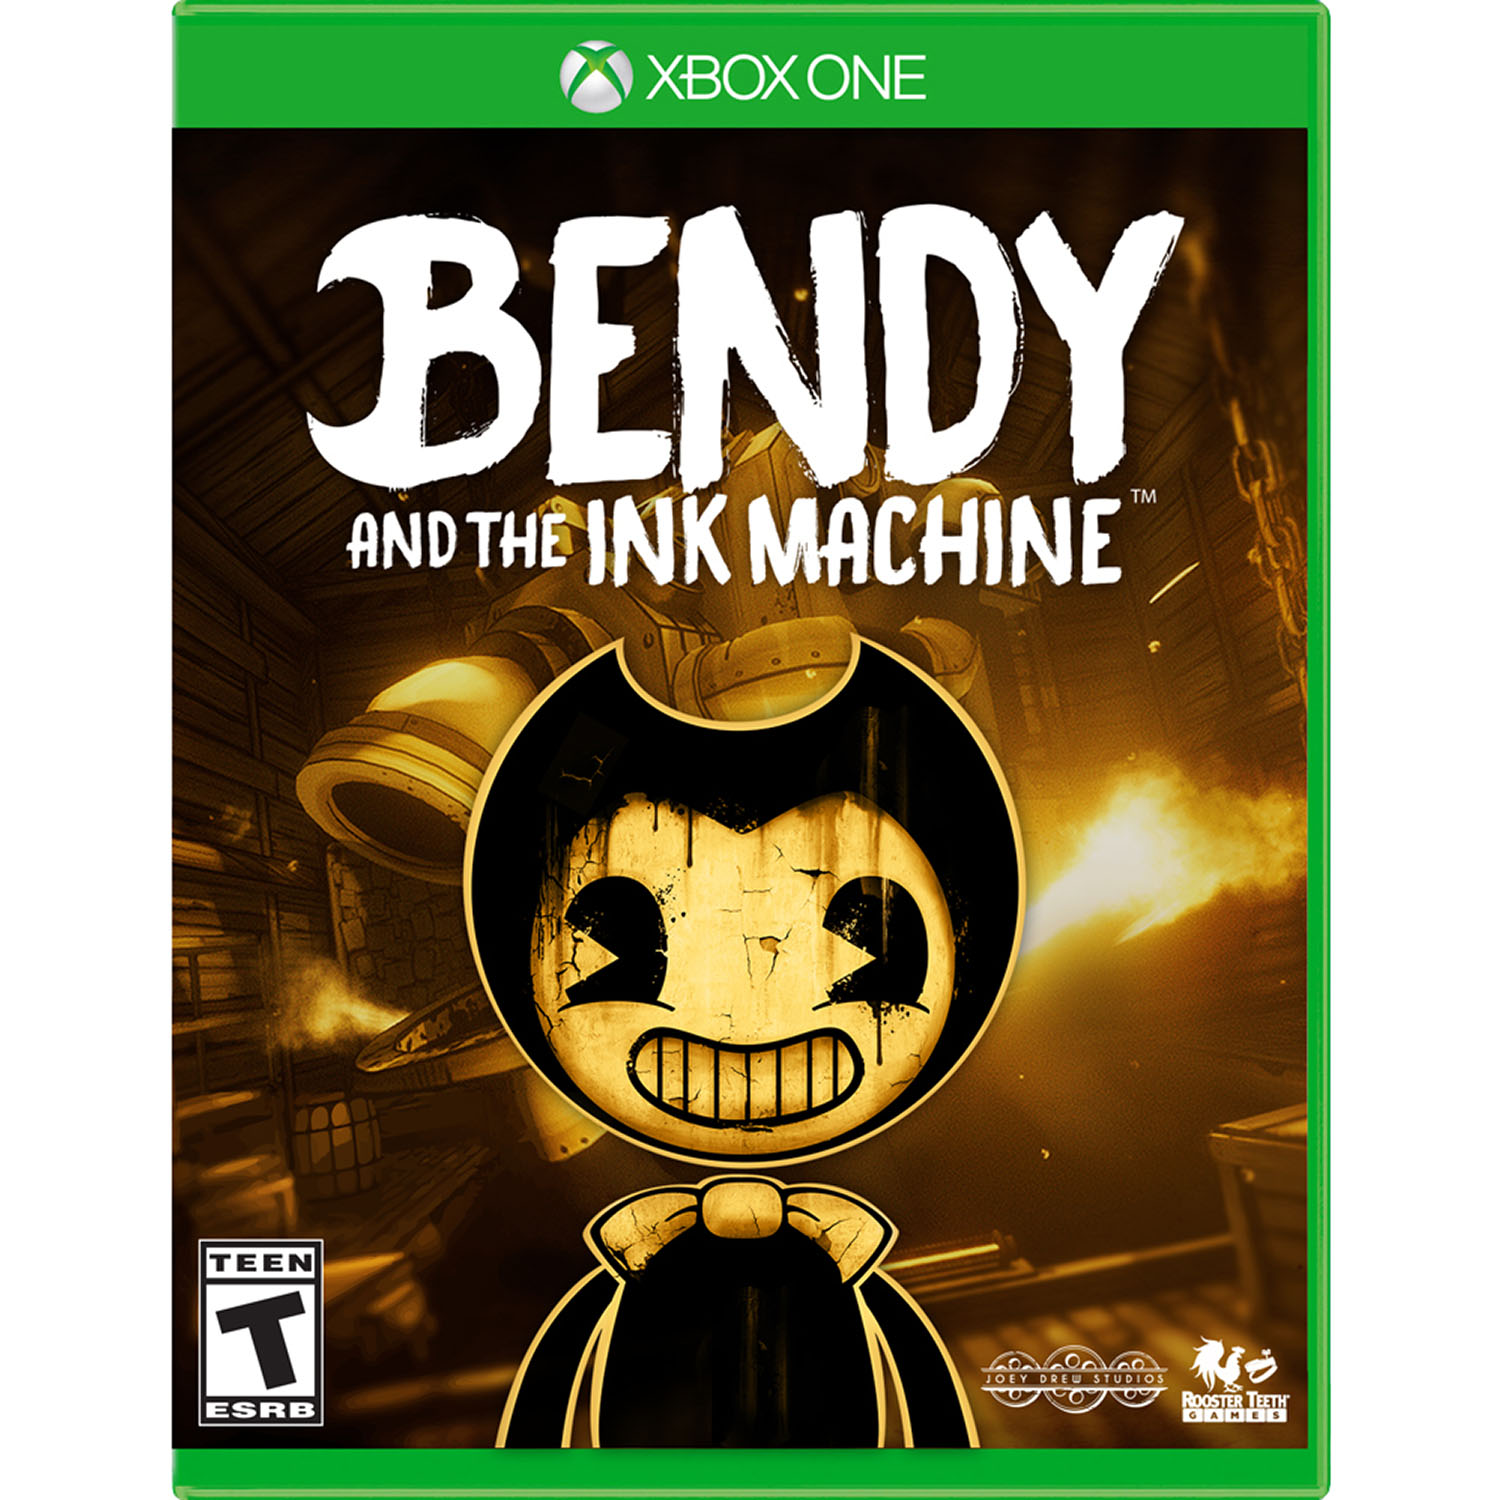 Bendy and the Ink Machine, Maximum Games, Xbox One, 814290014551